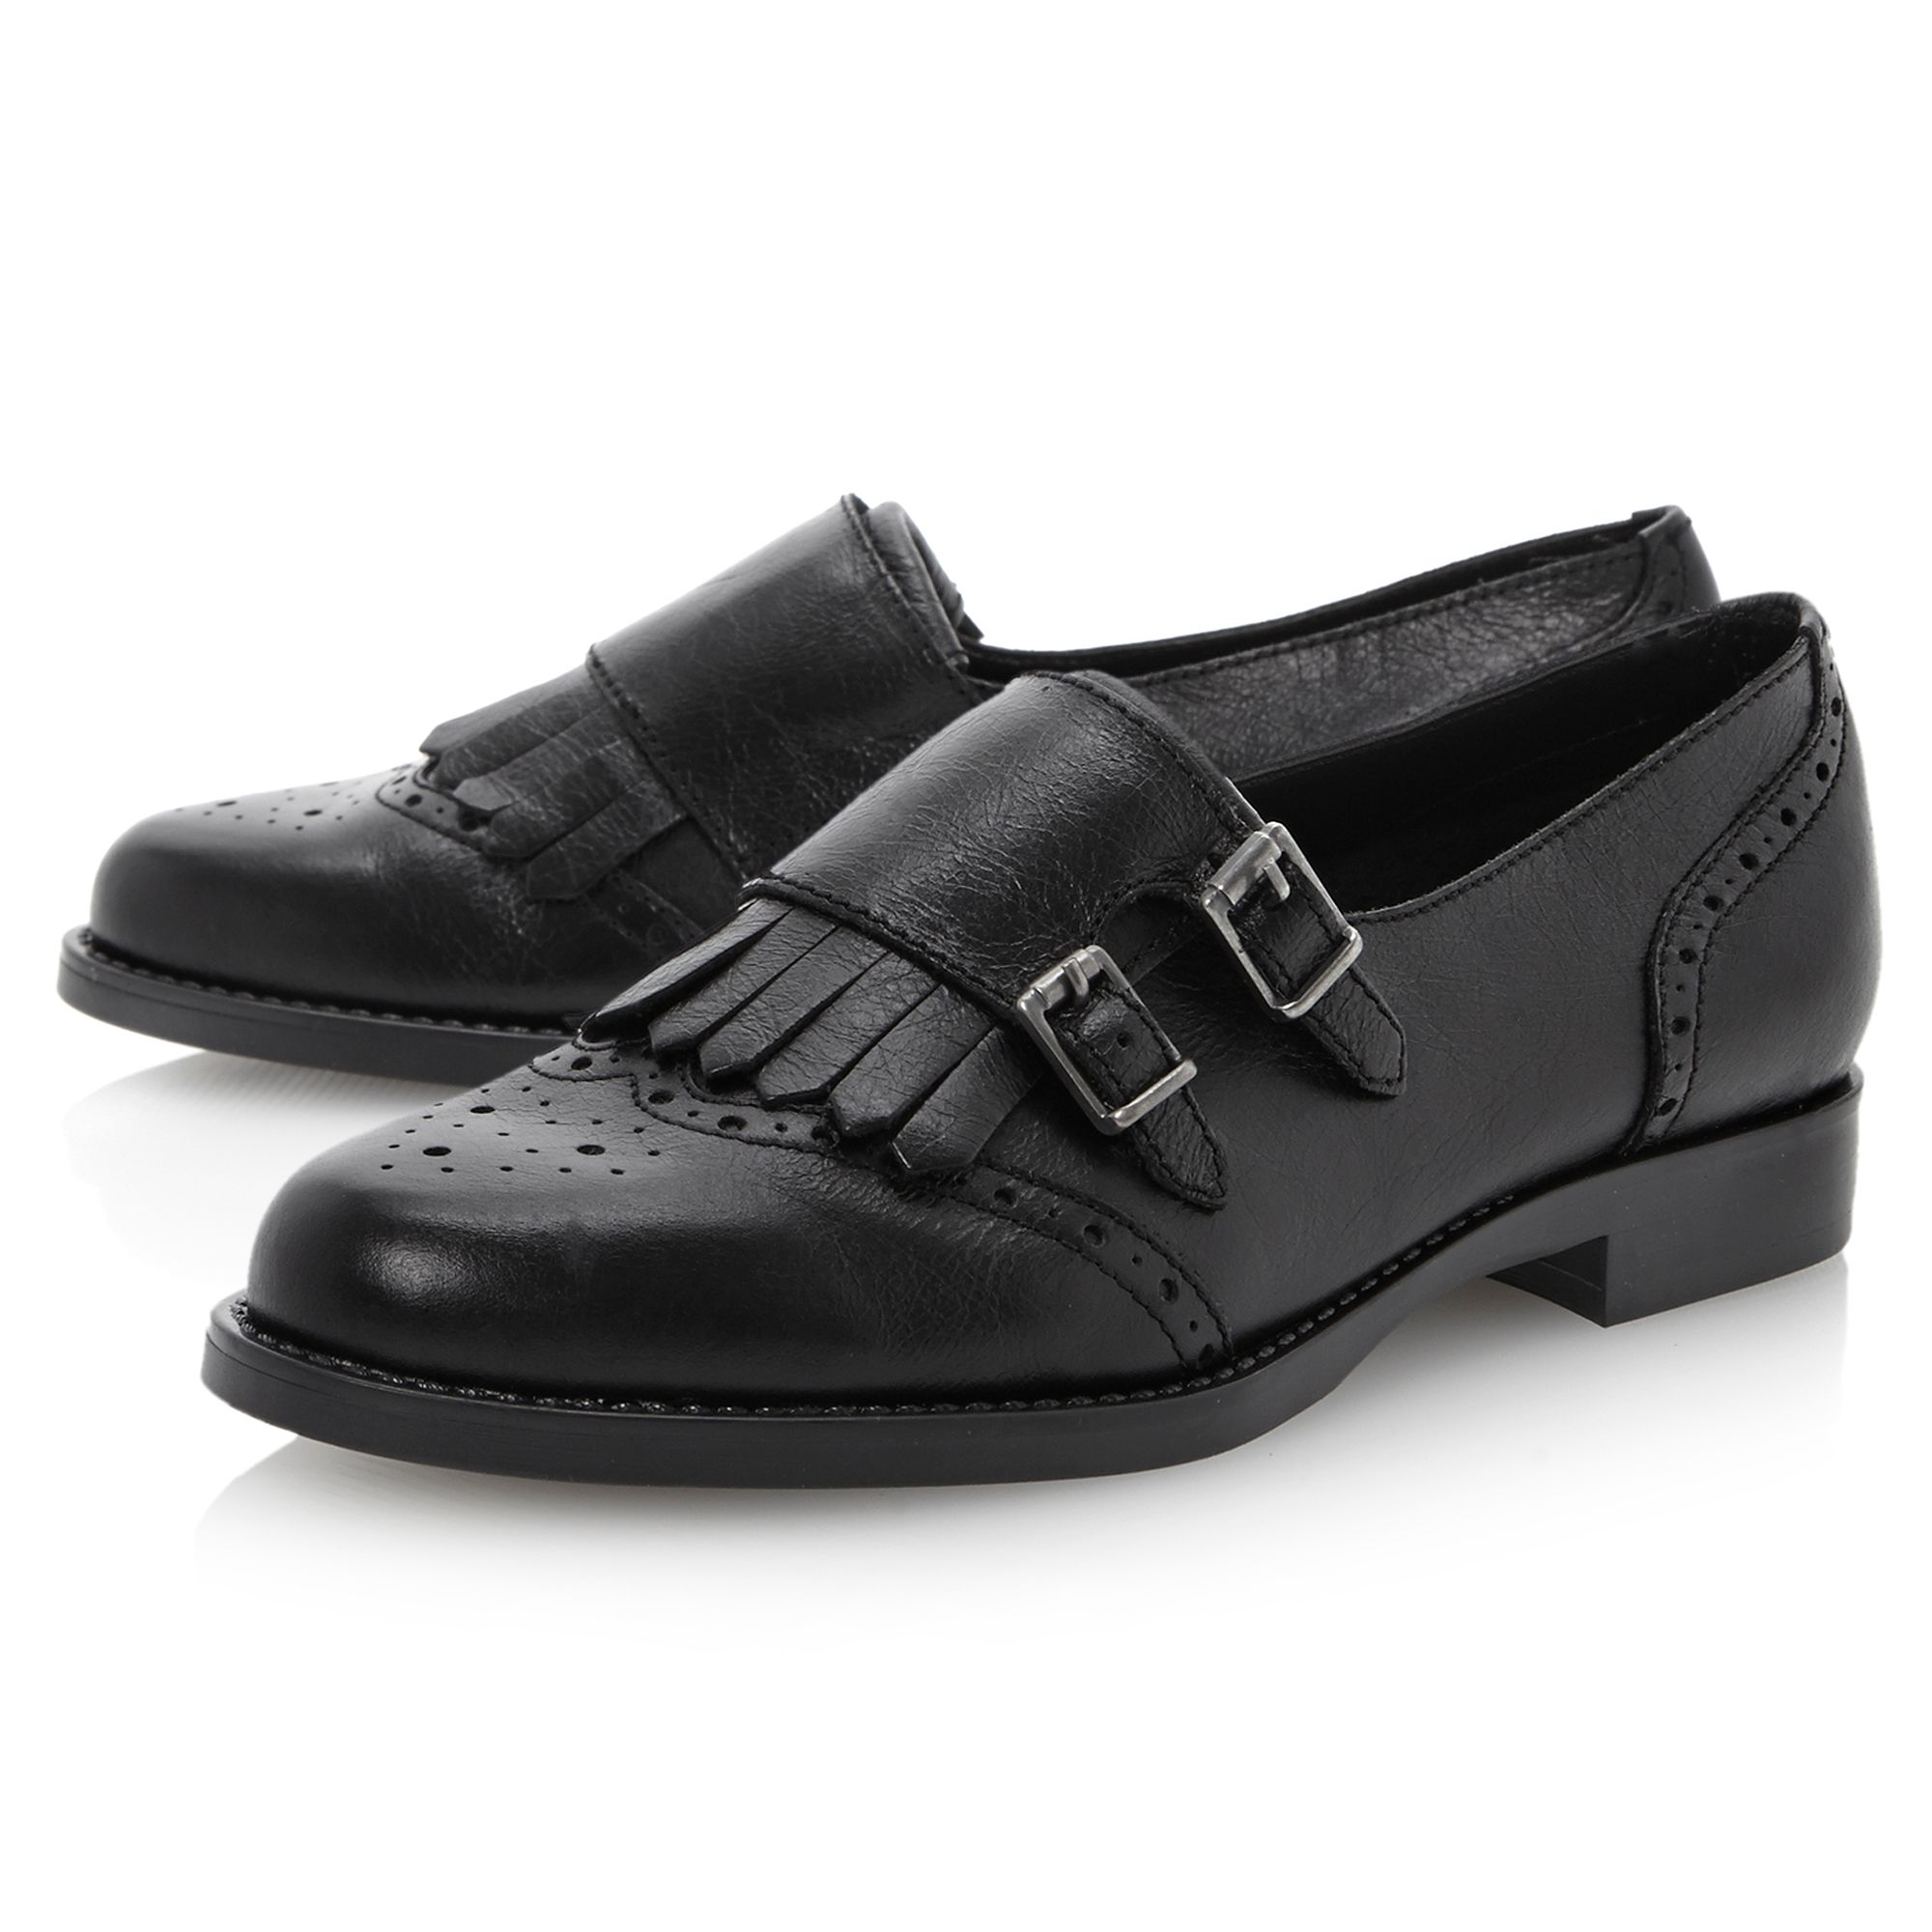 Livia double buckle monk shoes